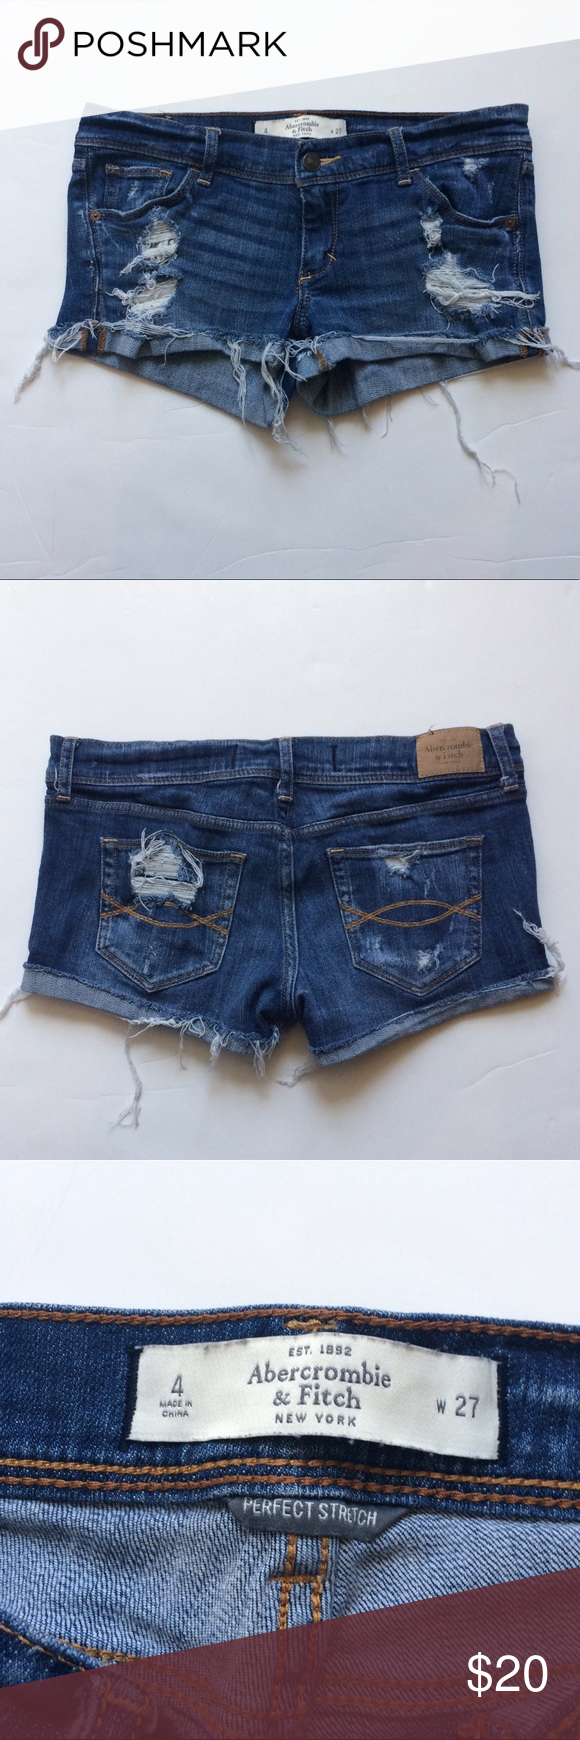 Abercrombie Distressed Jean Denim Shorts Great condition!  No flaws. Perfectly distressed.  Size 4. 27 waist. No trades. Abercrombie & Fitch Shorts Jean Shorts